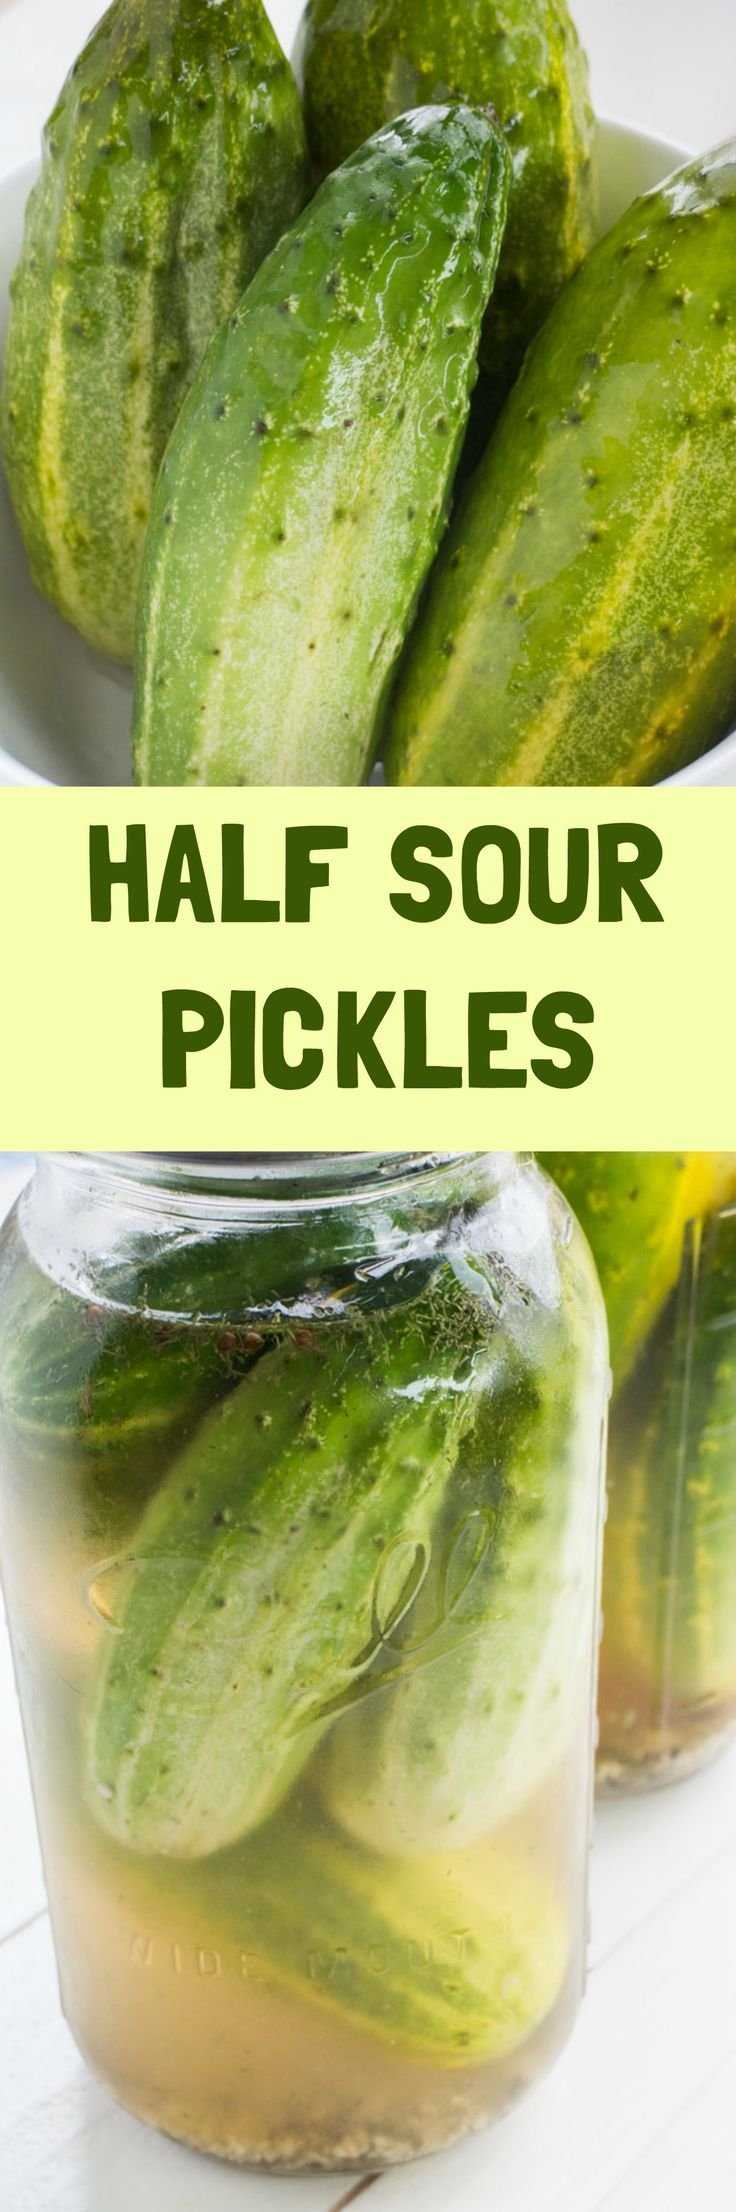 The best Half Sour Pickles recipe there is! These taste like crunchy NY deli pickles!